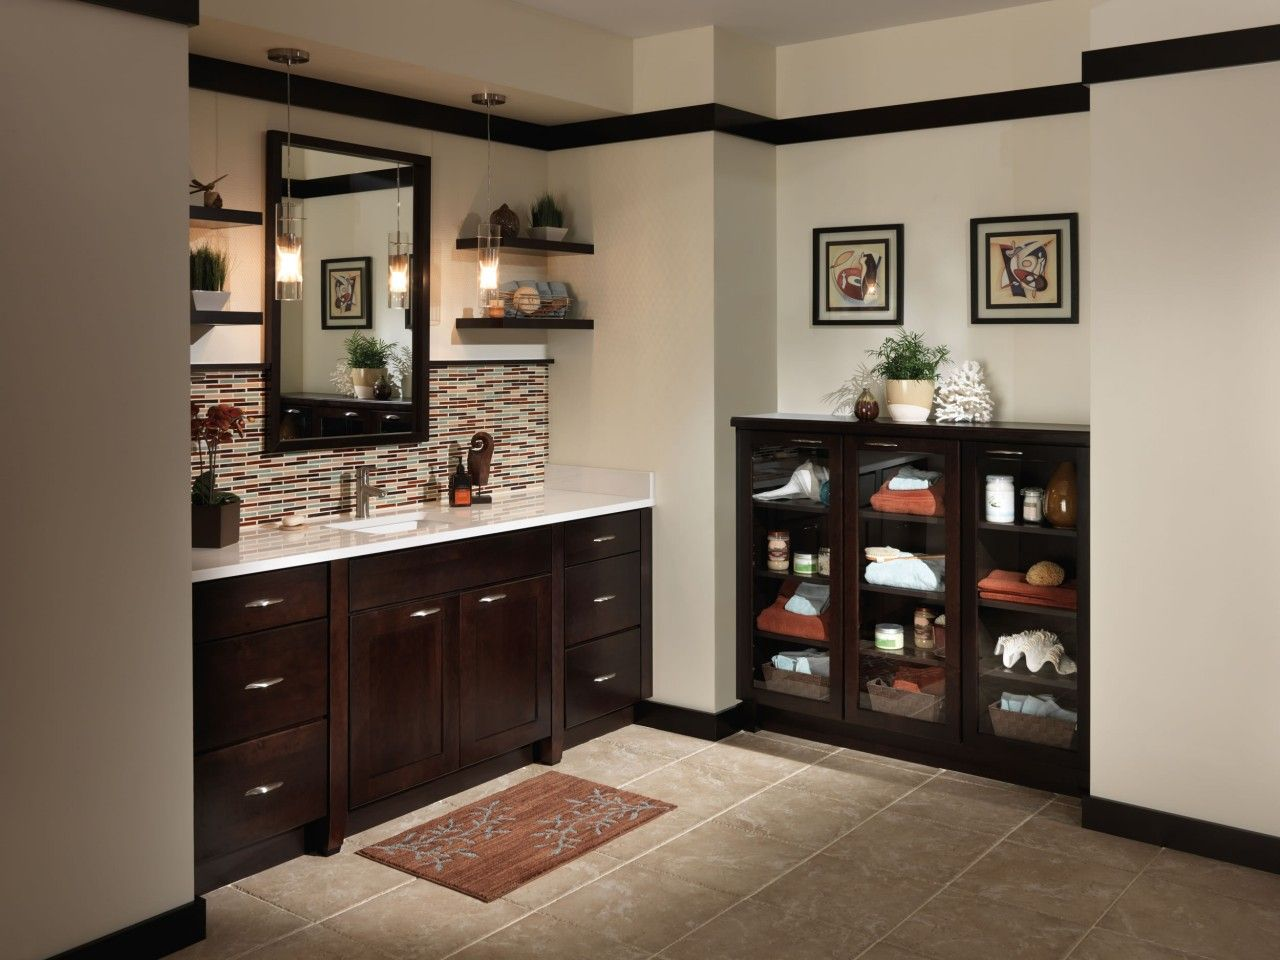 Bathroom sink cabinets ideas - Bathroom Dark Brown Bathroom Sink Cabinets With White Countertops Fabulous Merrilat Cabinets Design Ideas